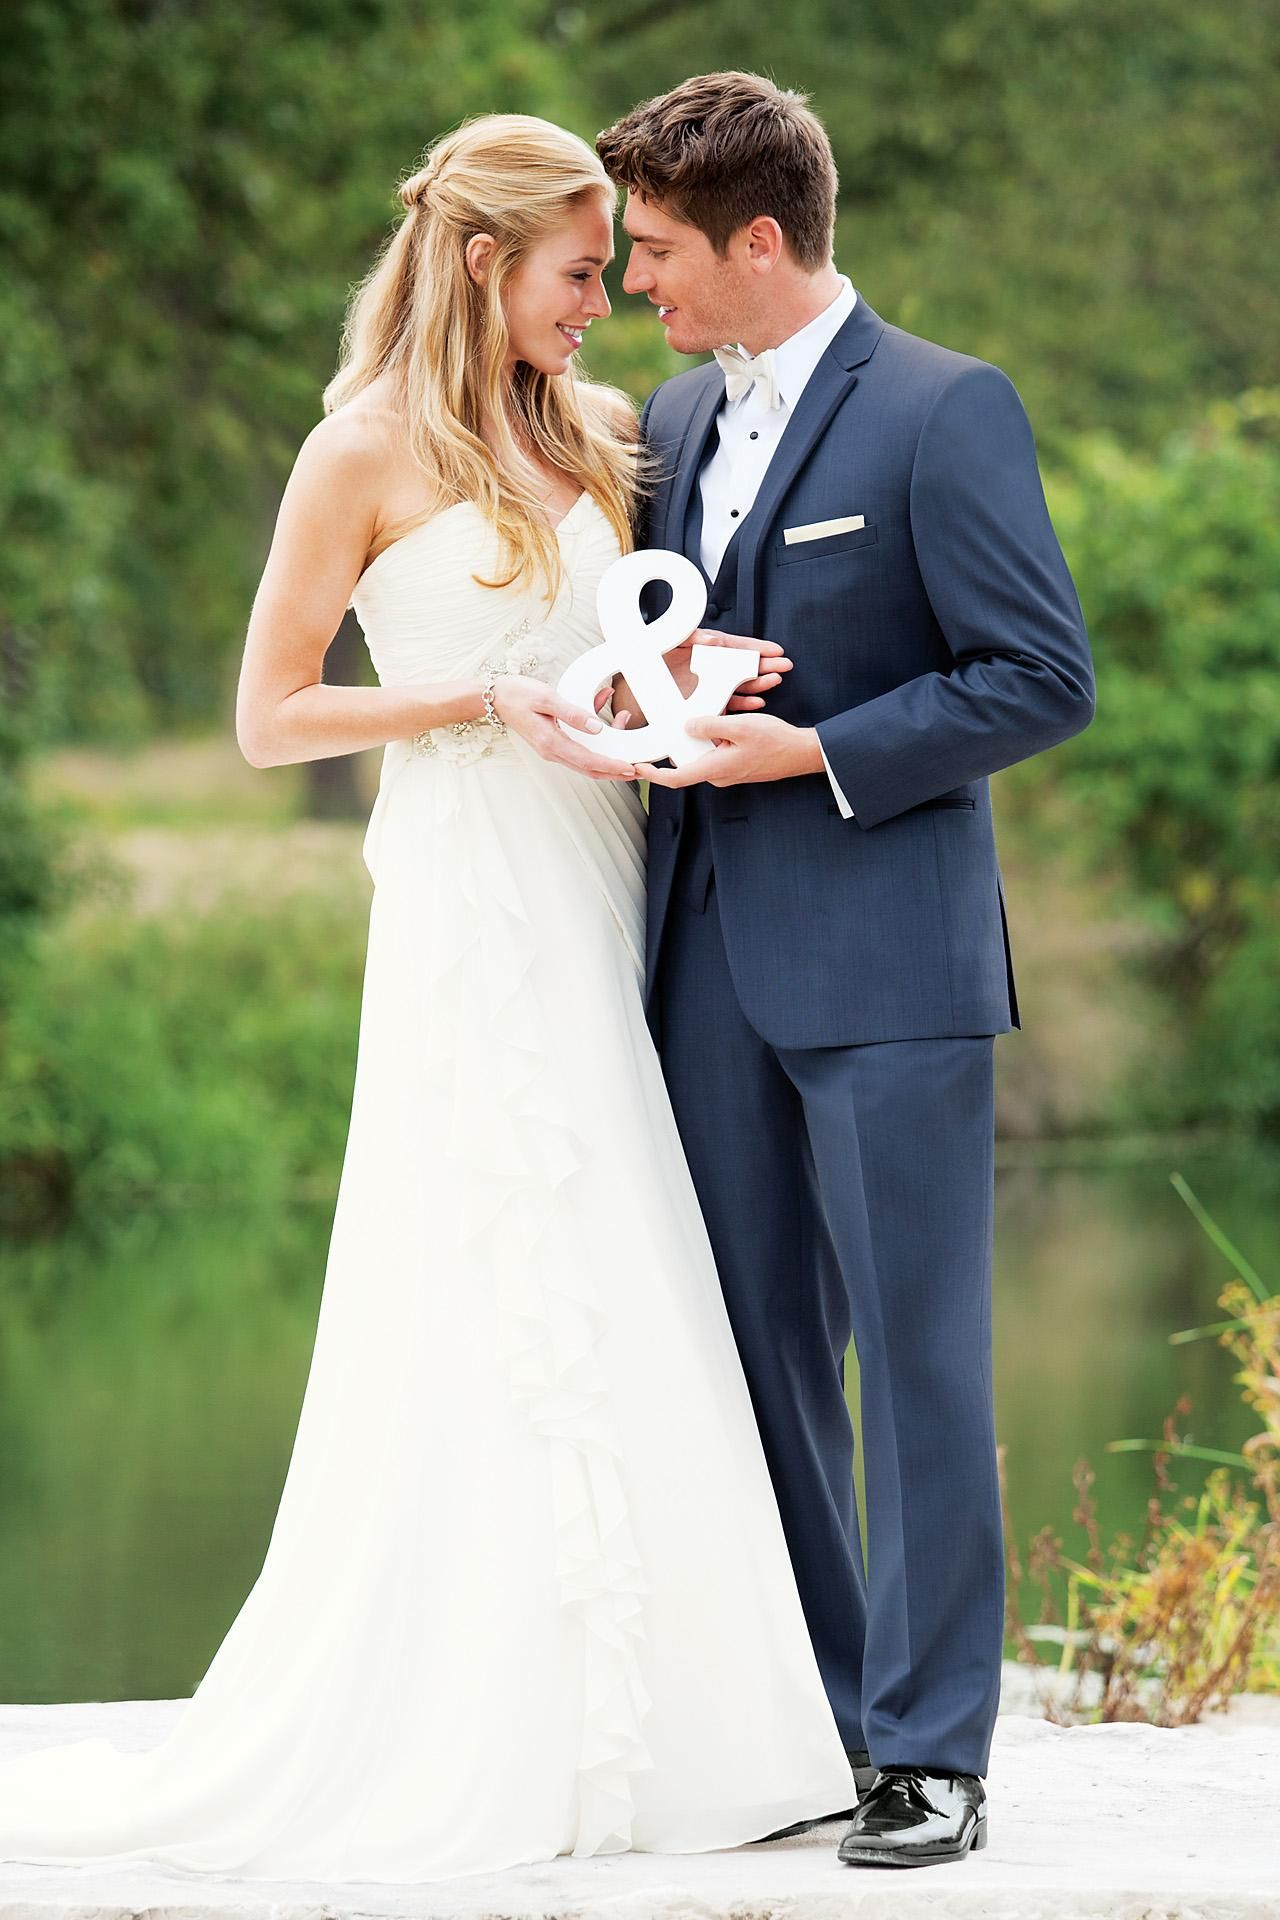 Explore Wedding Suits Tuxedos And More